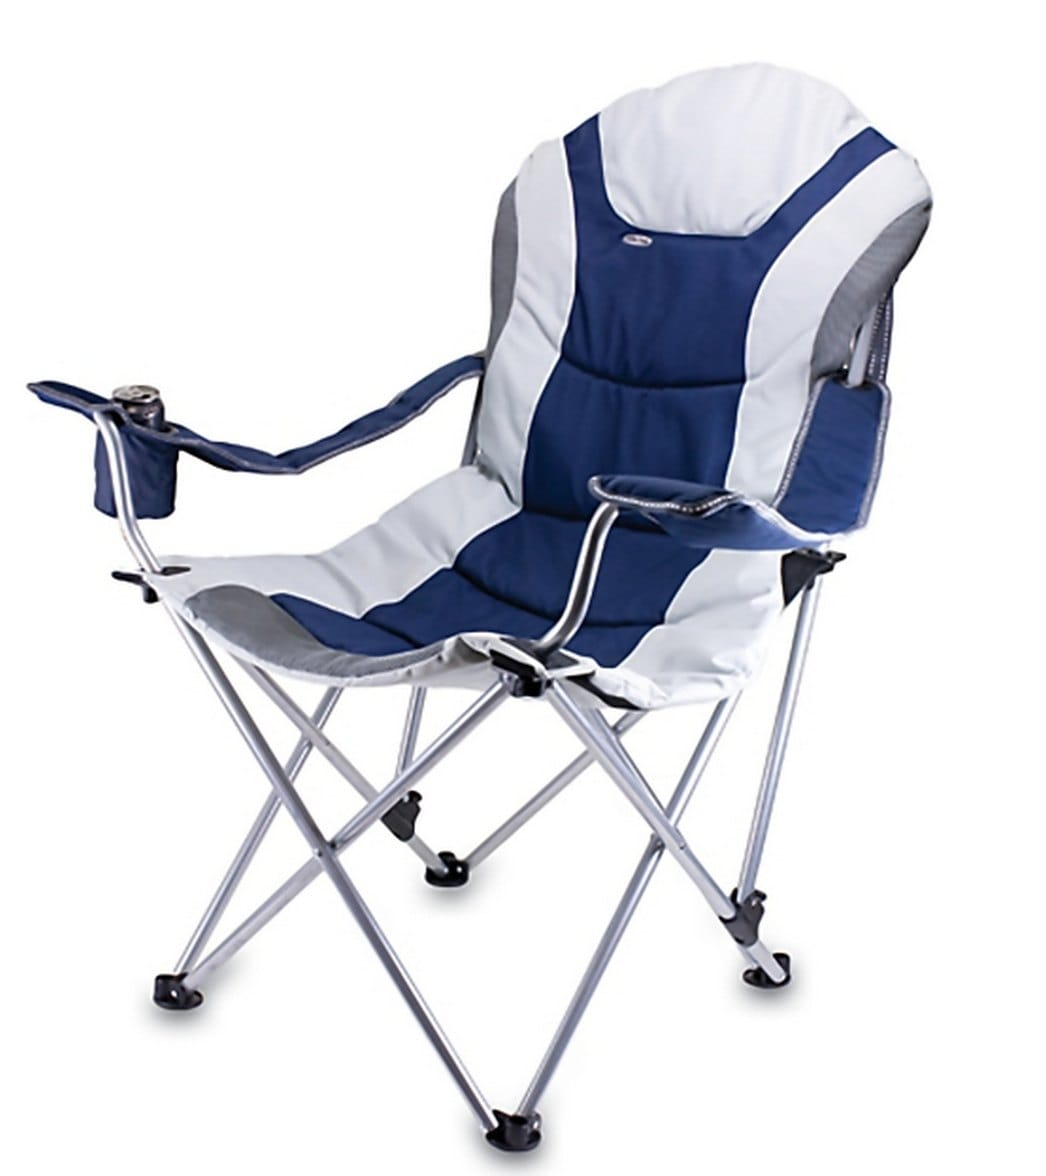 Picnic Time Reclining Camp U0026 Beach Chair At SwimOutlet.com   Free Shipping